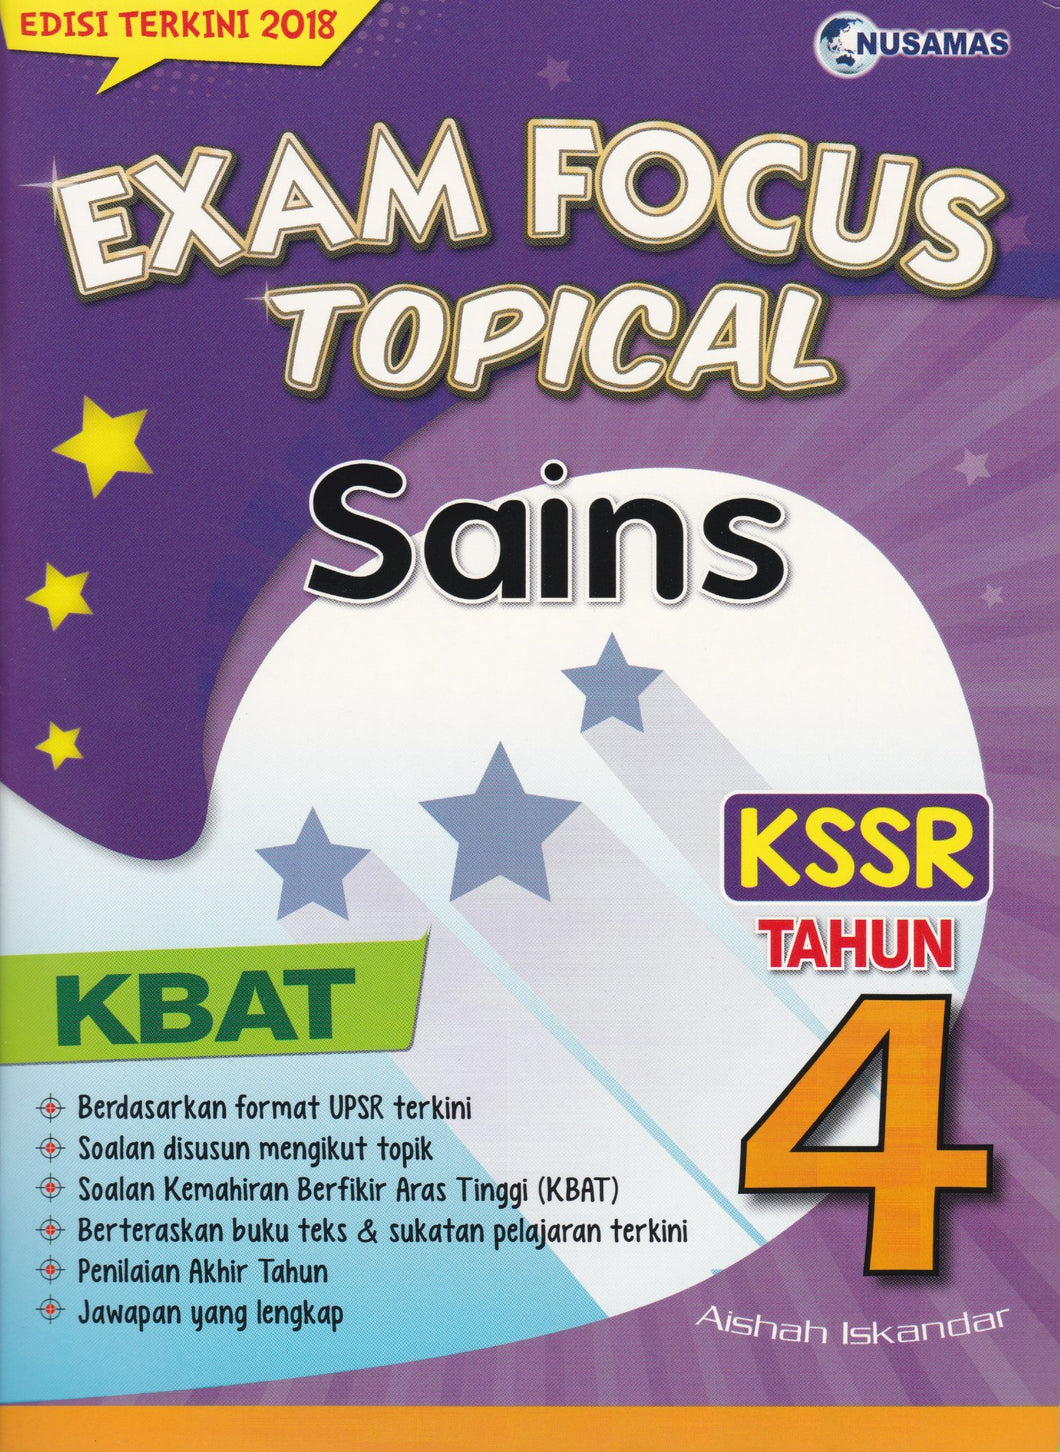 Nusamas-Exam Focus Topical: Sains Tahun 4-9789674369910-BukuDBP.com